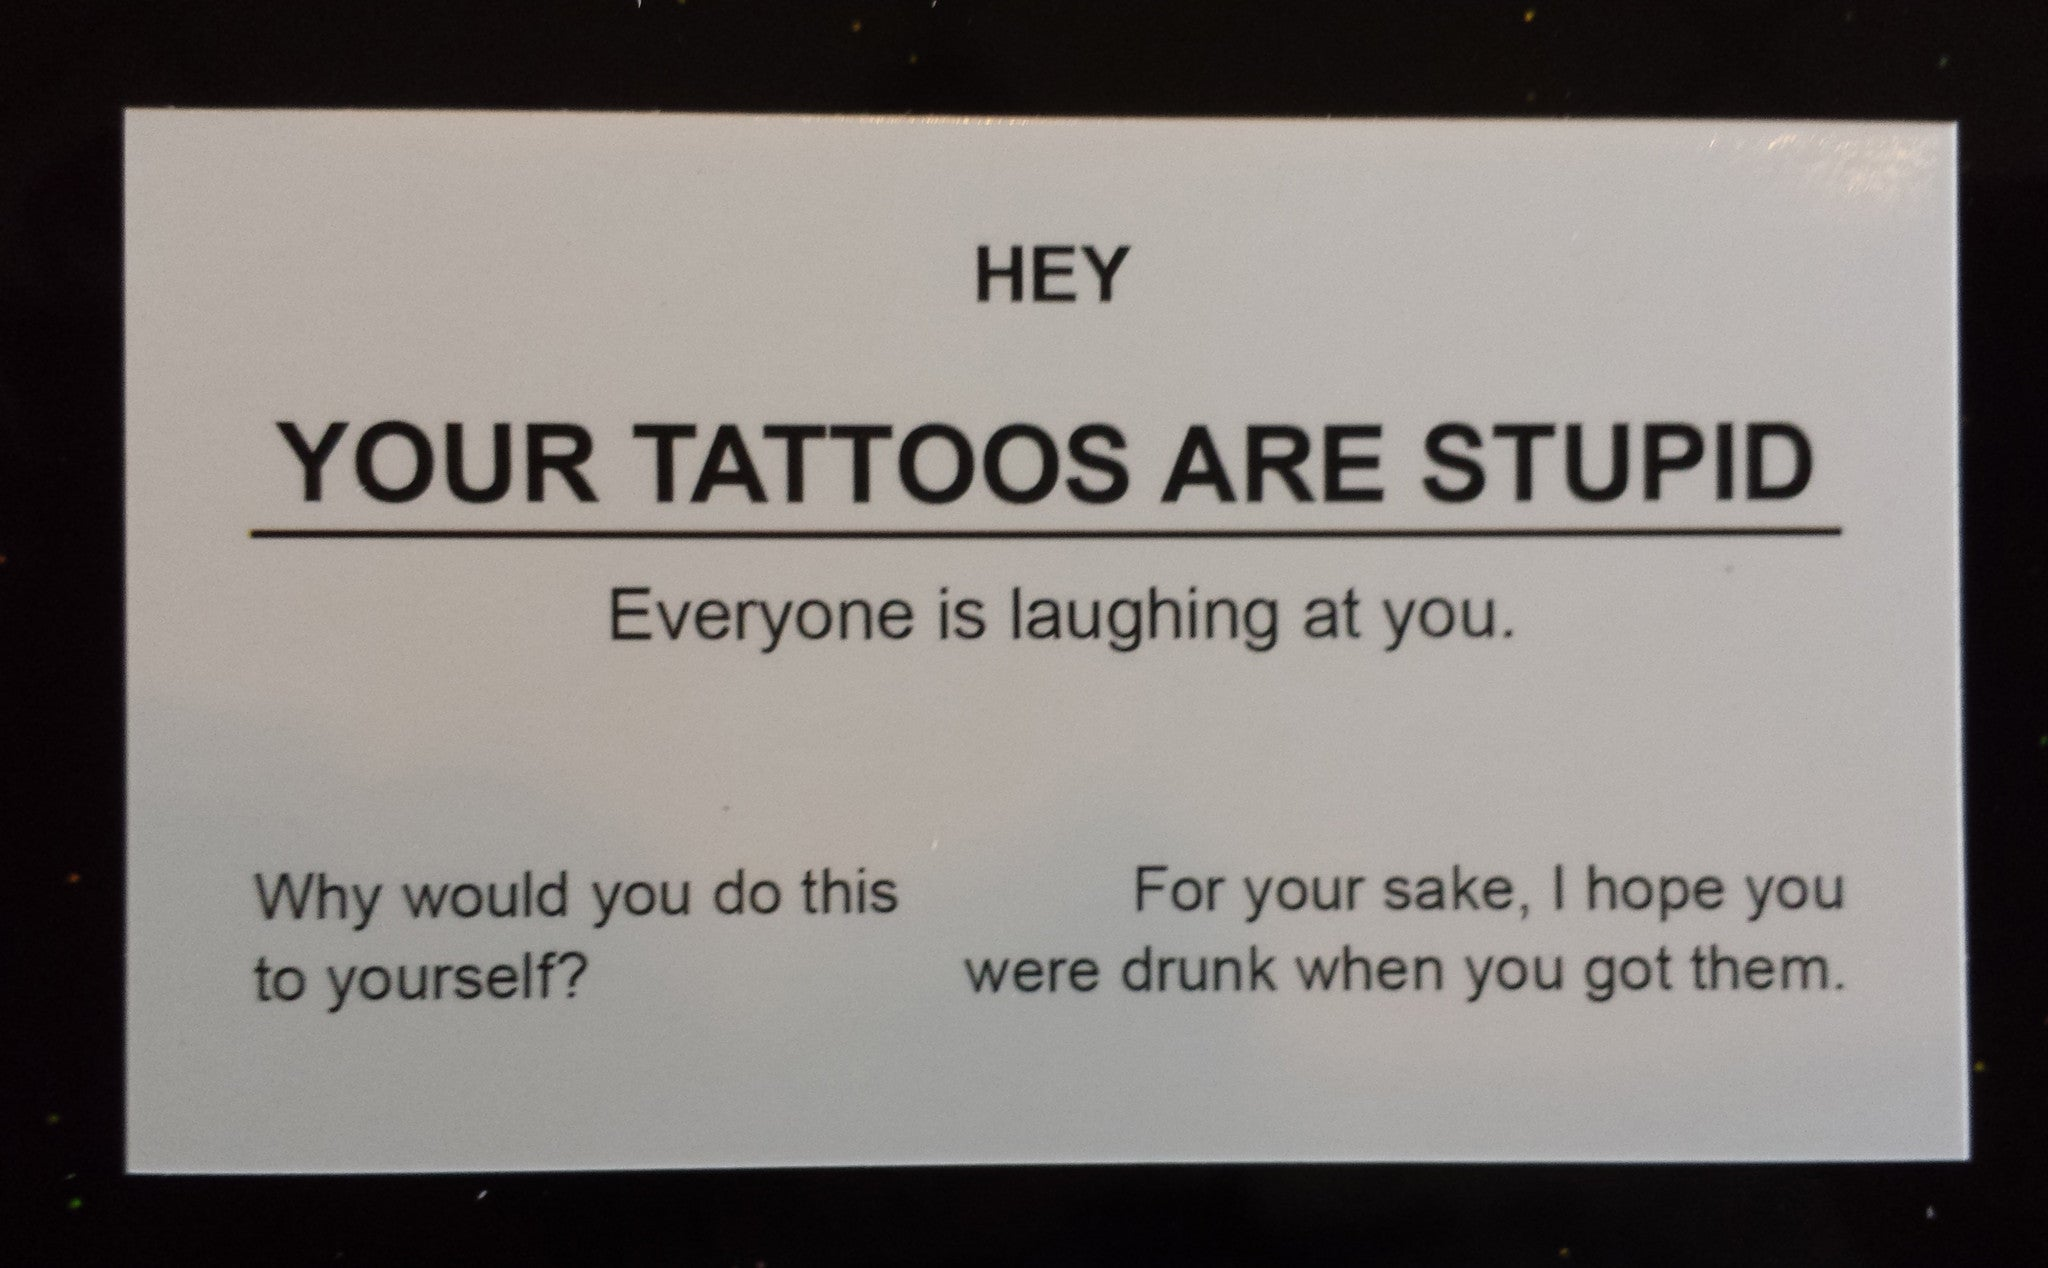 your_tattoos_are_stupid_business_card?v=1429549409